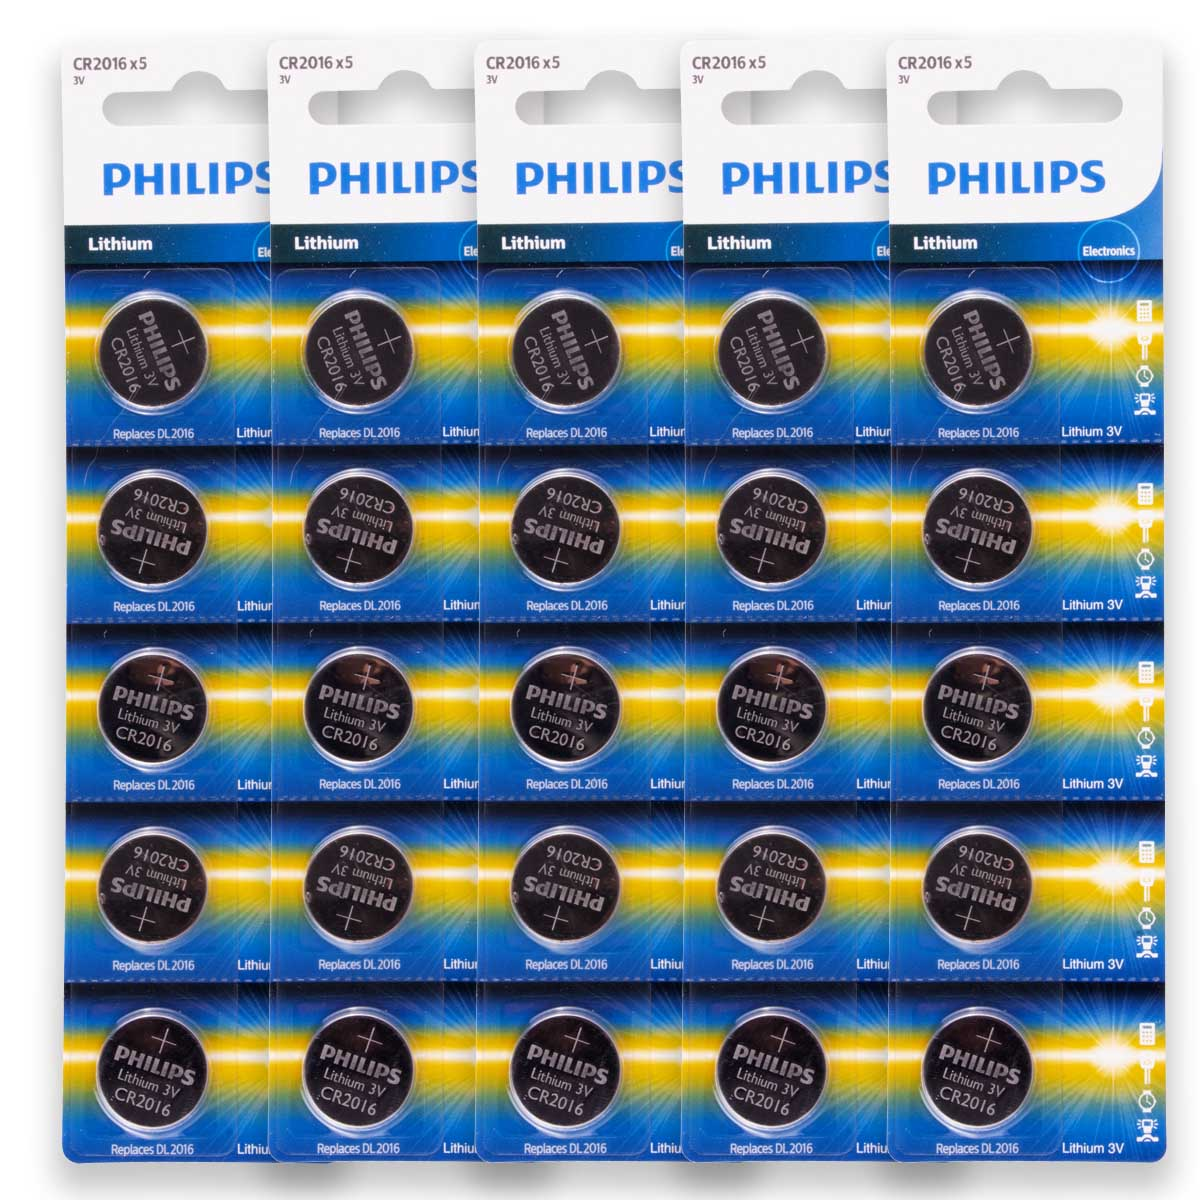 25 Pilhas PHILIPS CR2016 3v Bateria Original - 5 cartelas